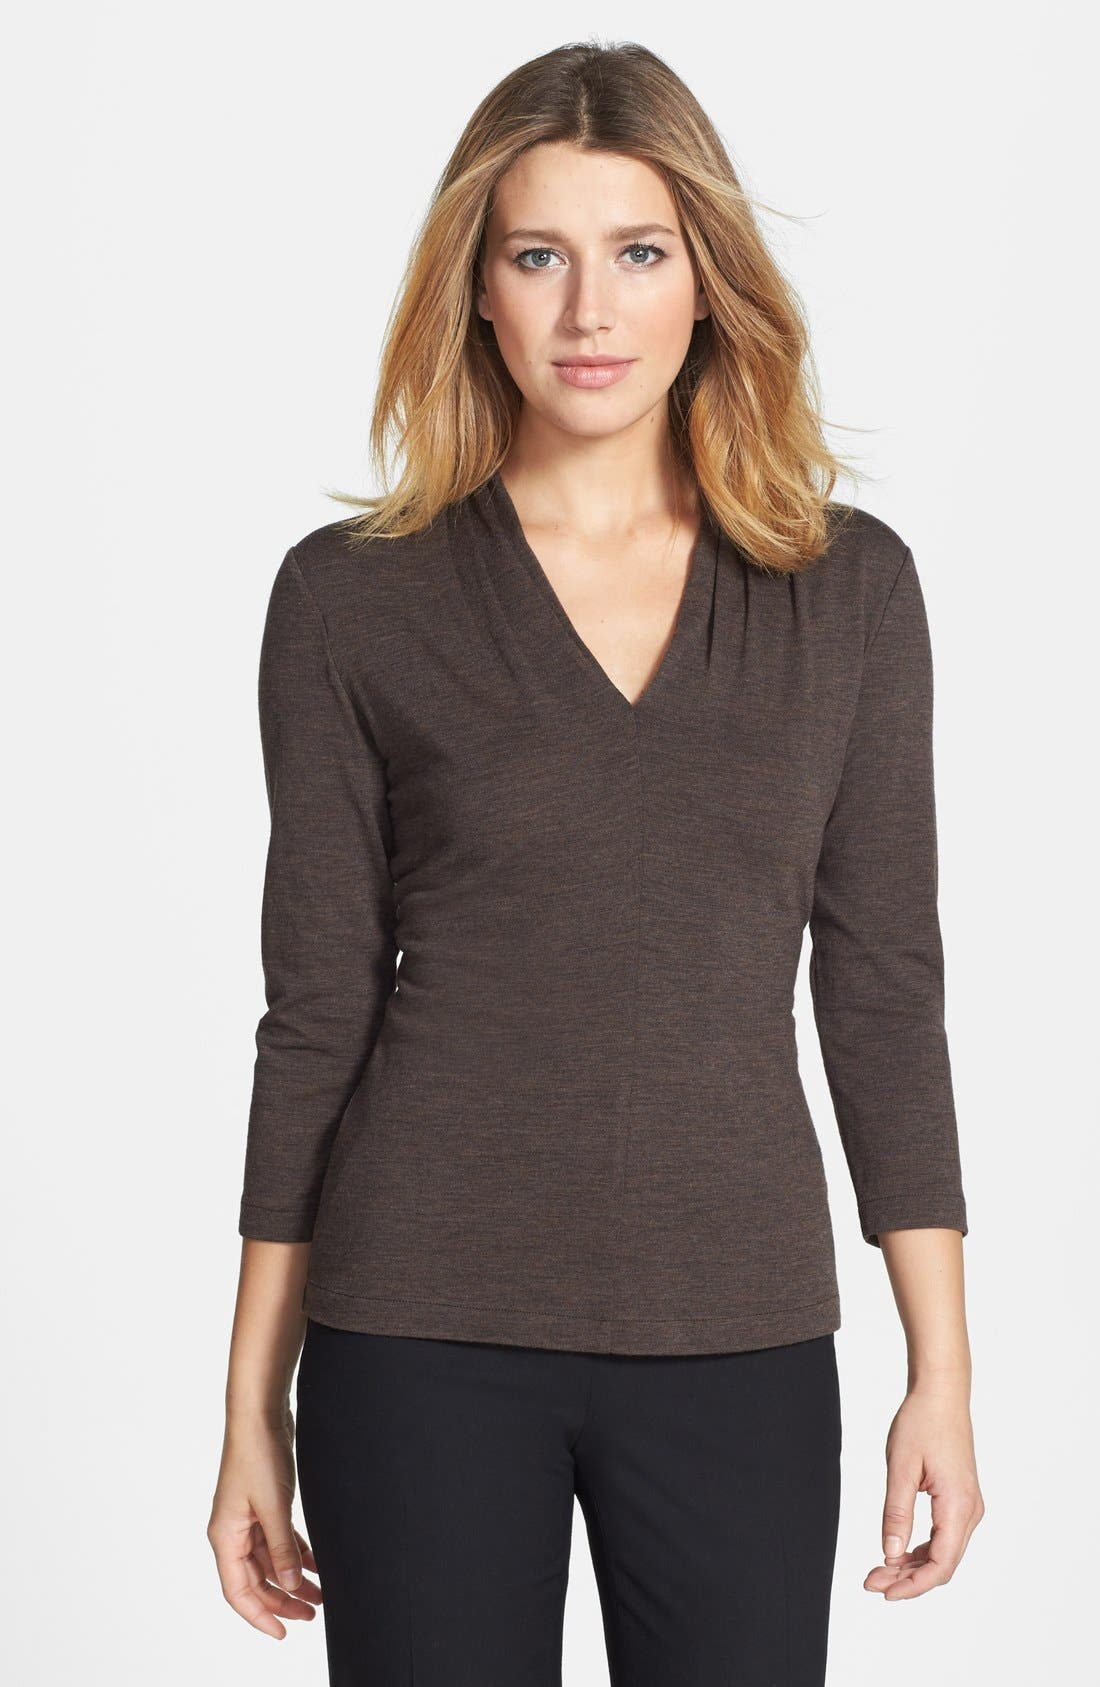 Alternate Image 1 Selected - Lafayette 148 New York Pleated V-Neck Top (Petite)